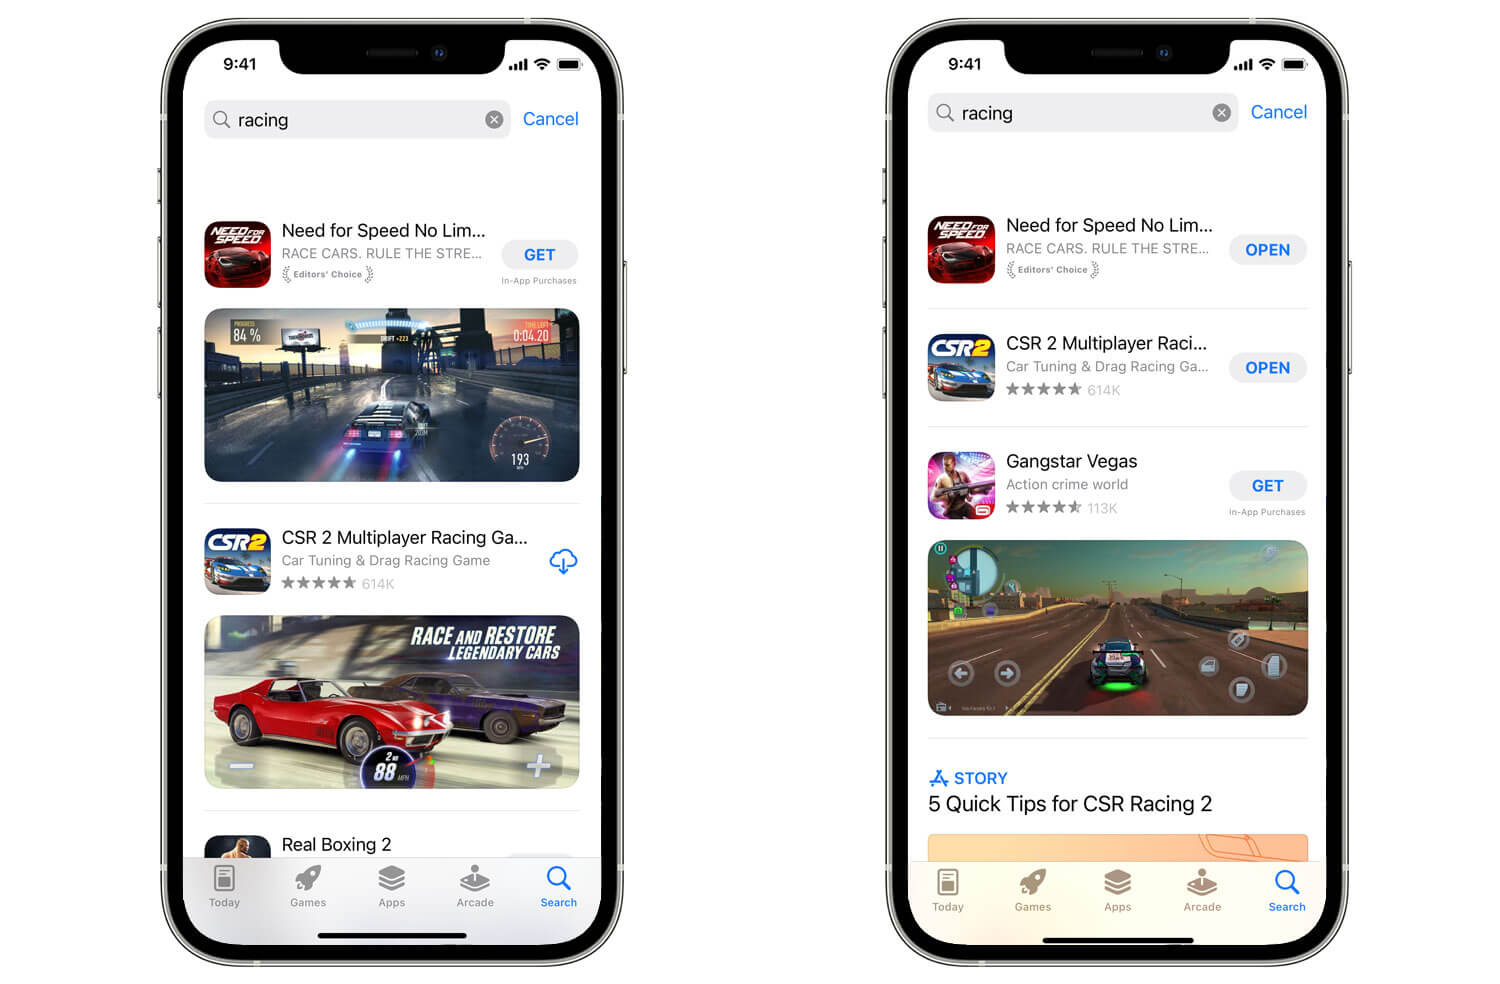 iOS 15 brings more search results to the App Store